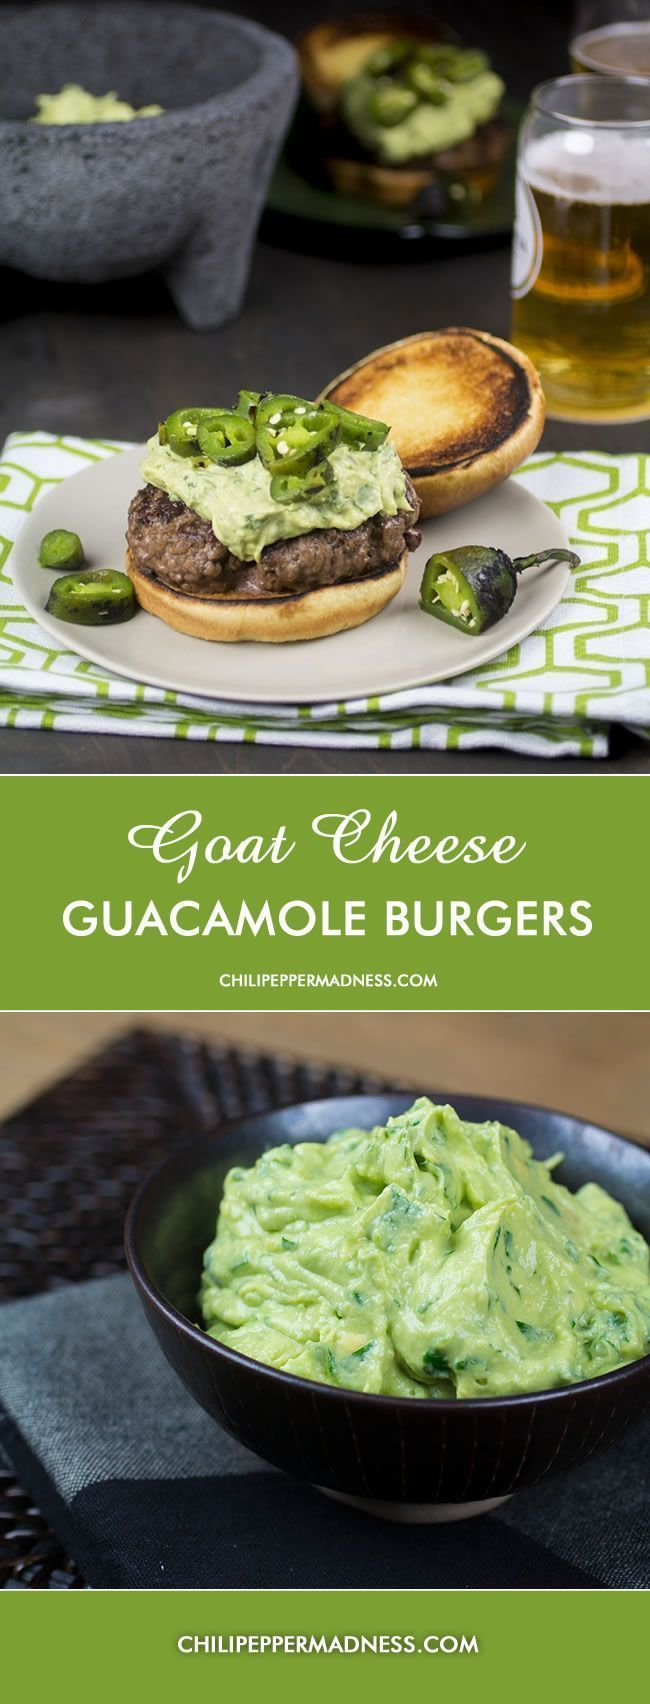 Goat Cheese Guacamole Burgers with Roasted Jalapeno Peppers from Chili Pepper Madness